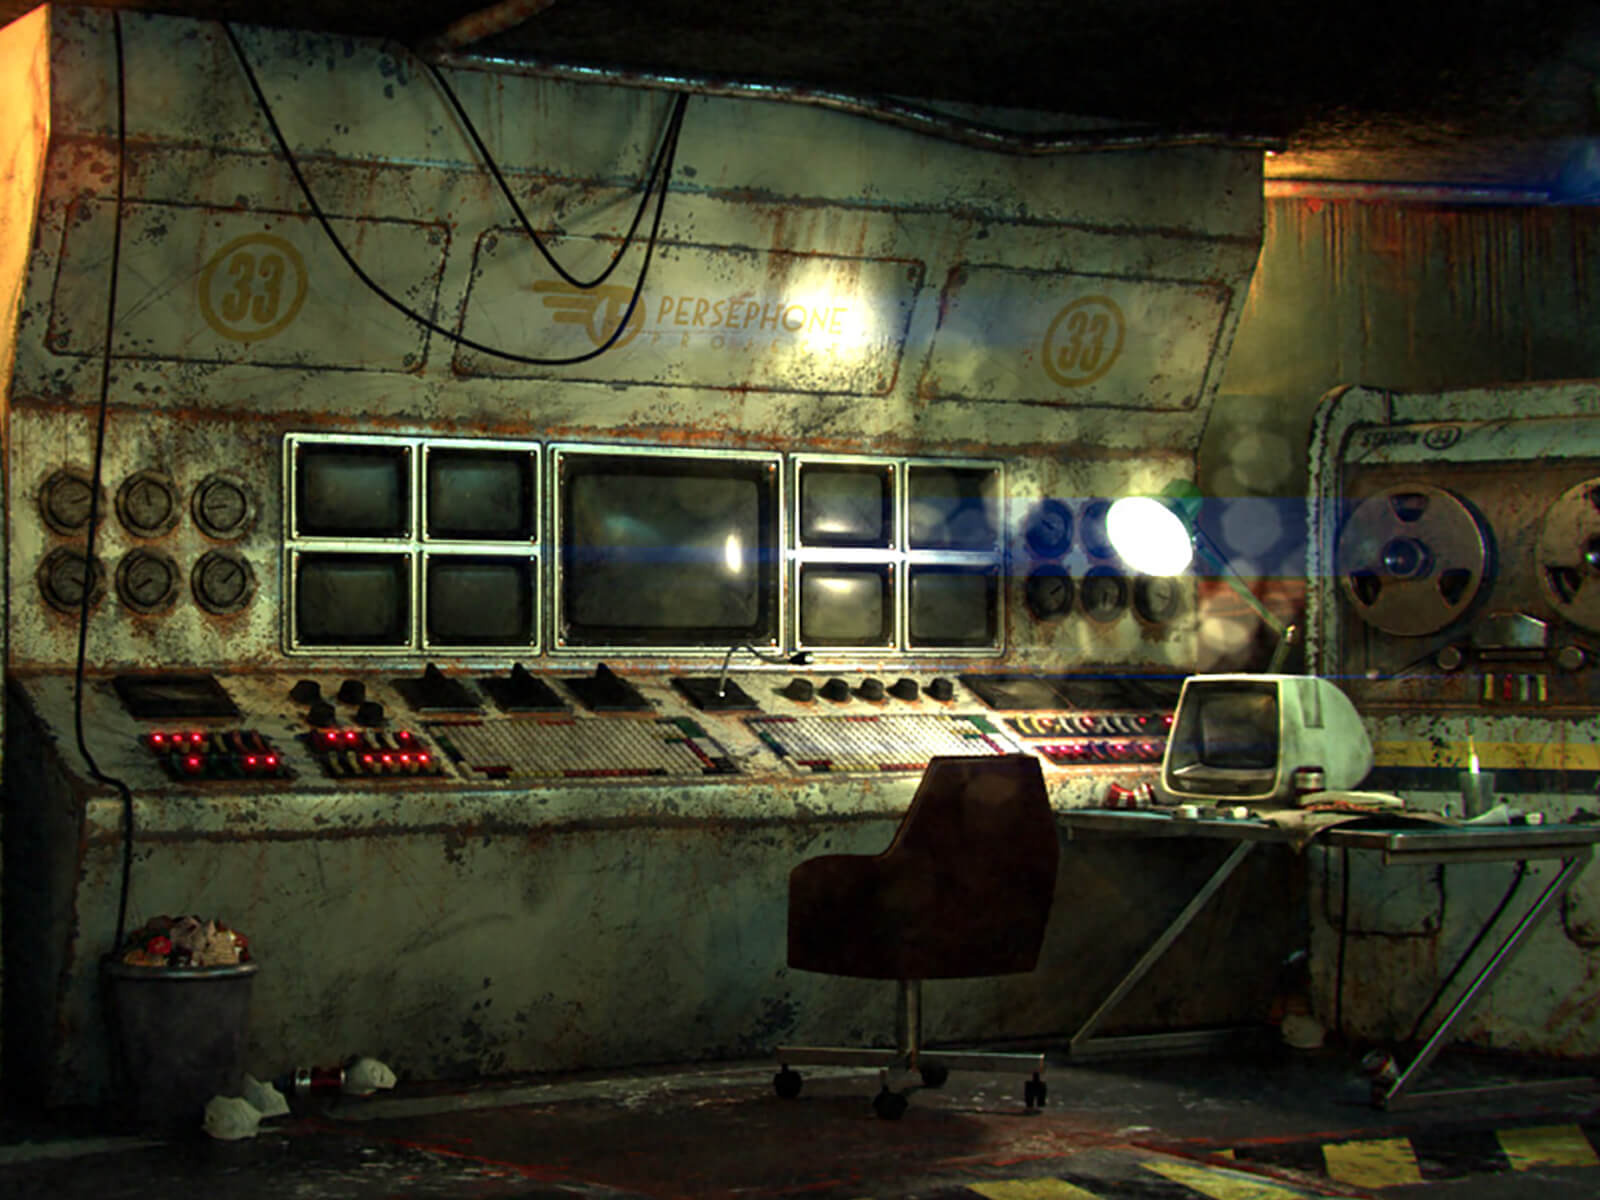 In an underground bunker, a dilapidated control console of obsolete electronics, monitors, and magnetic tape computers.